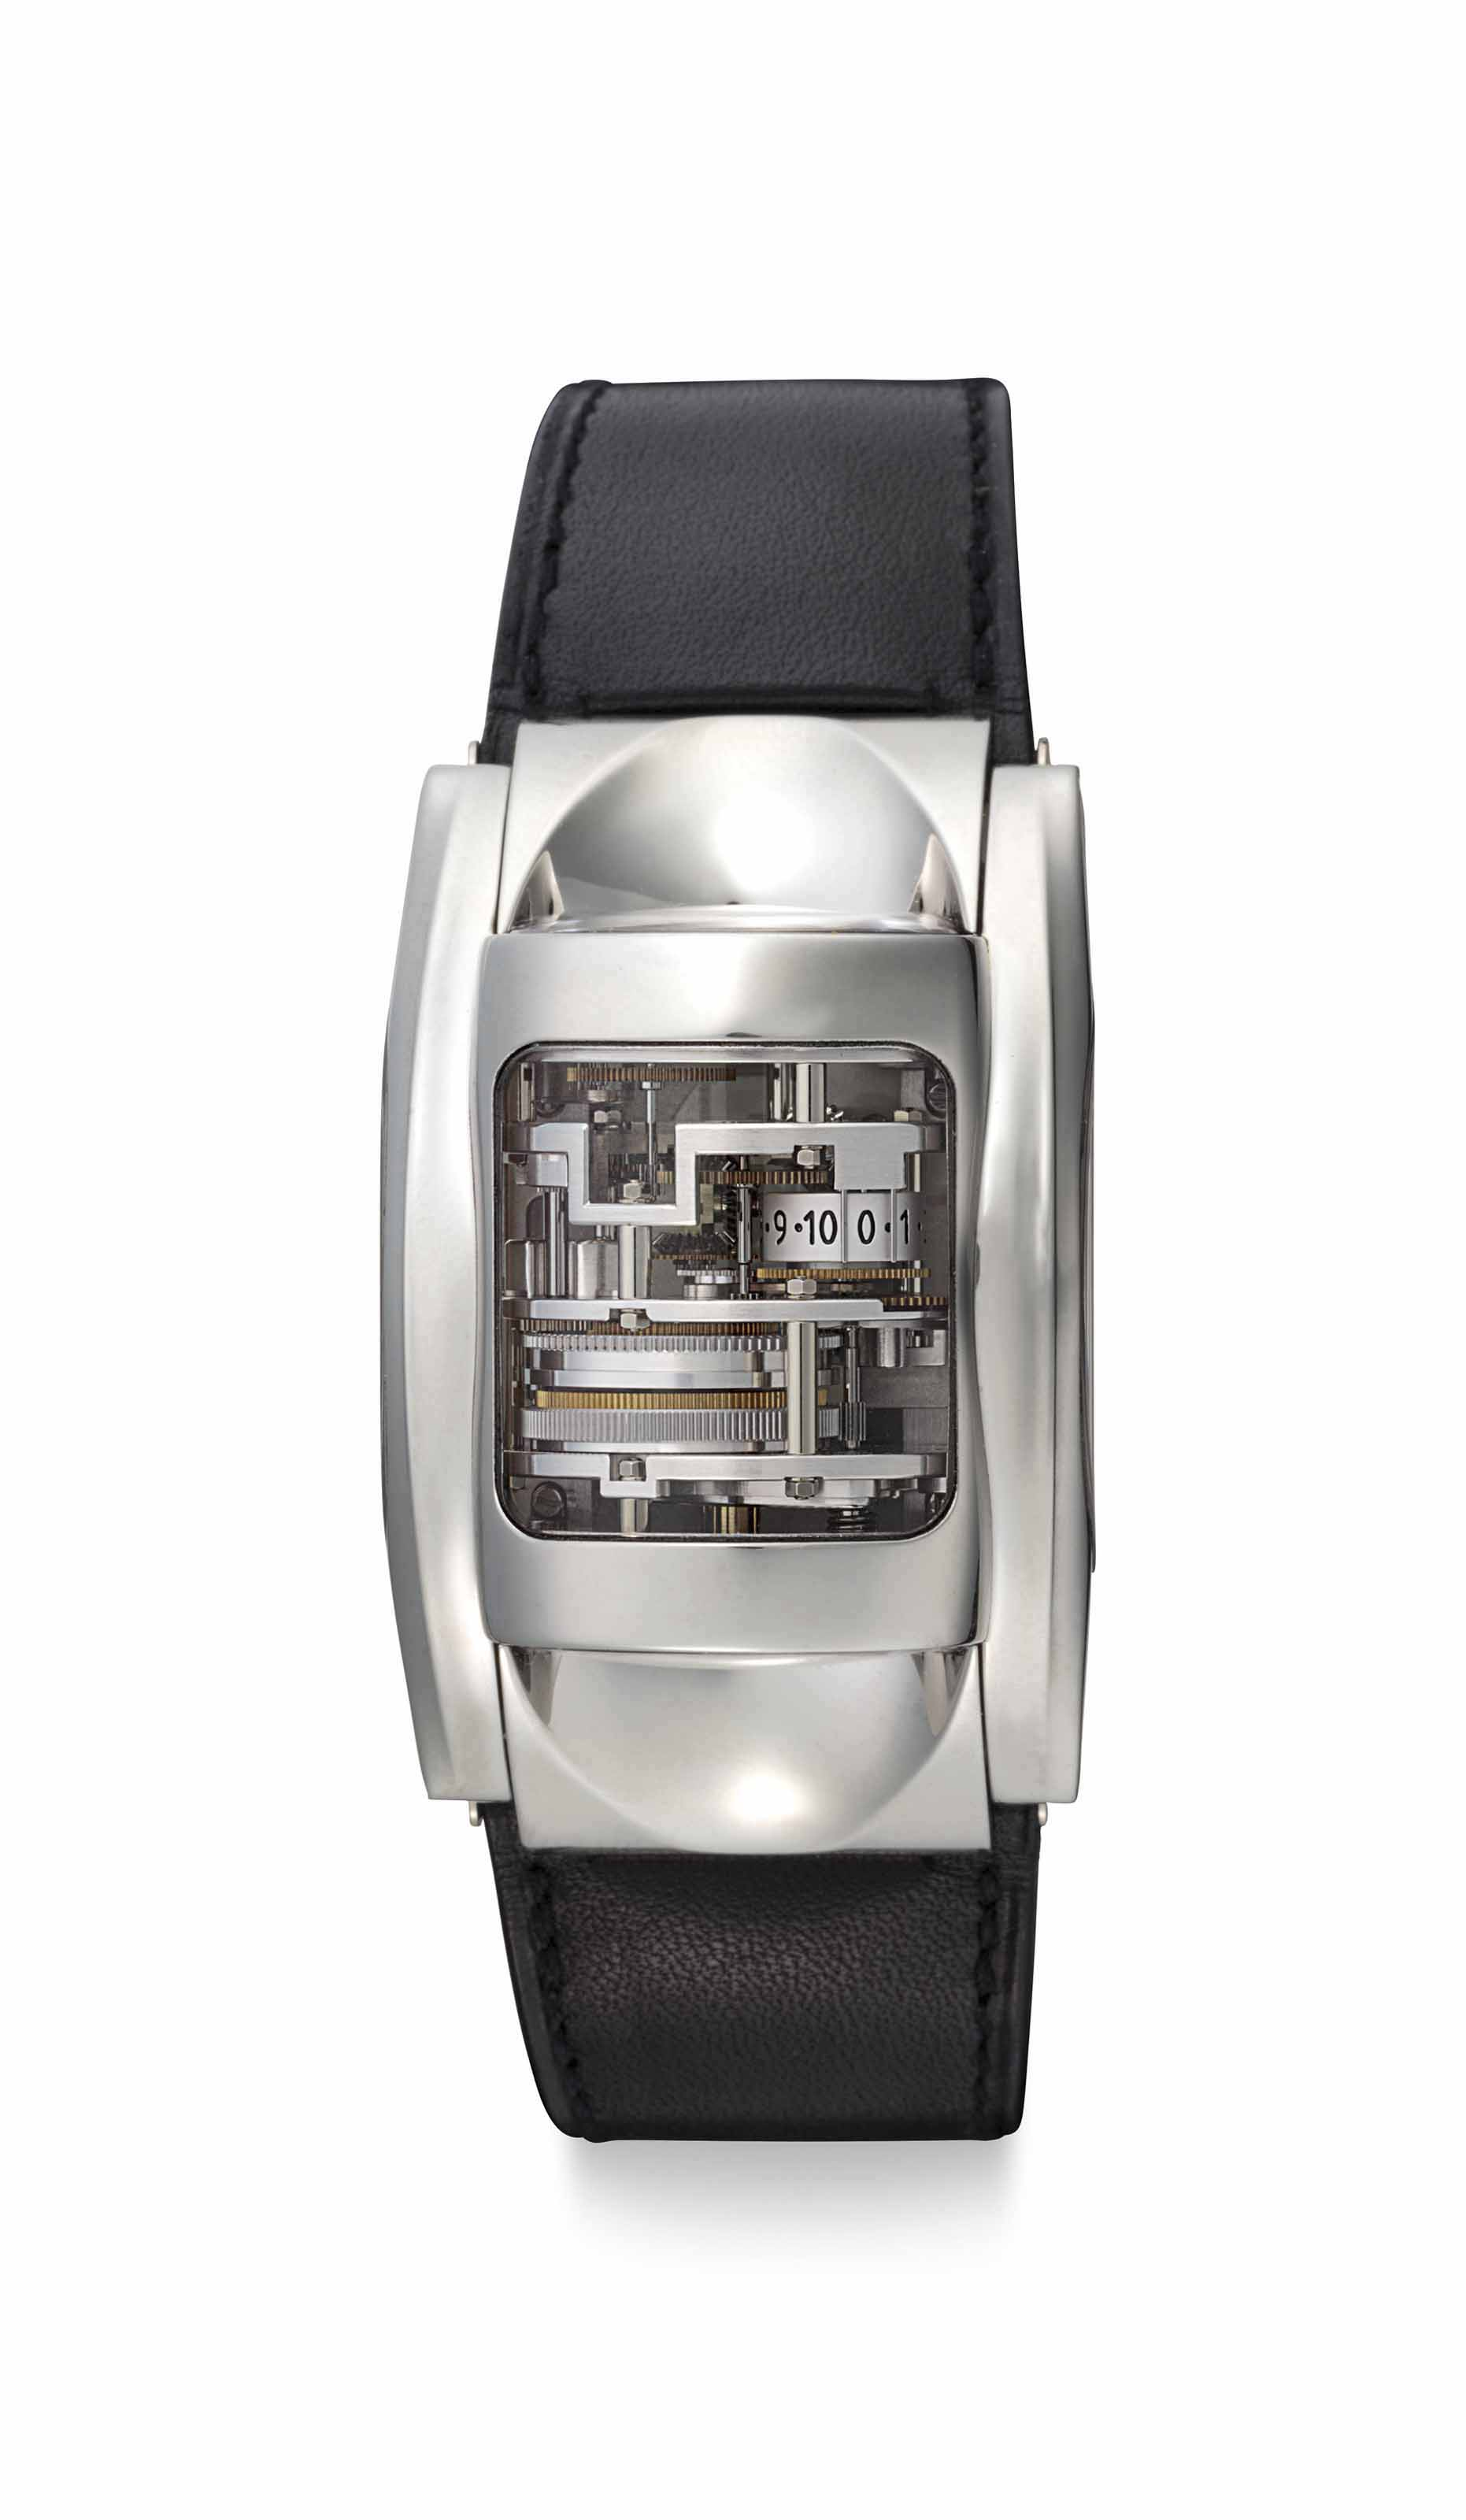 Parmigiani Fleurier. A Very Fine and Very Rare Platinum Cylindrical Wristwatch with 10 Day Power Reserve